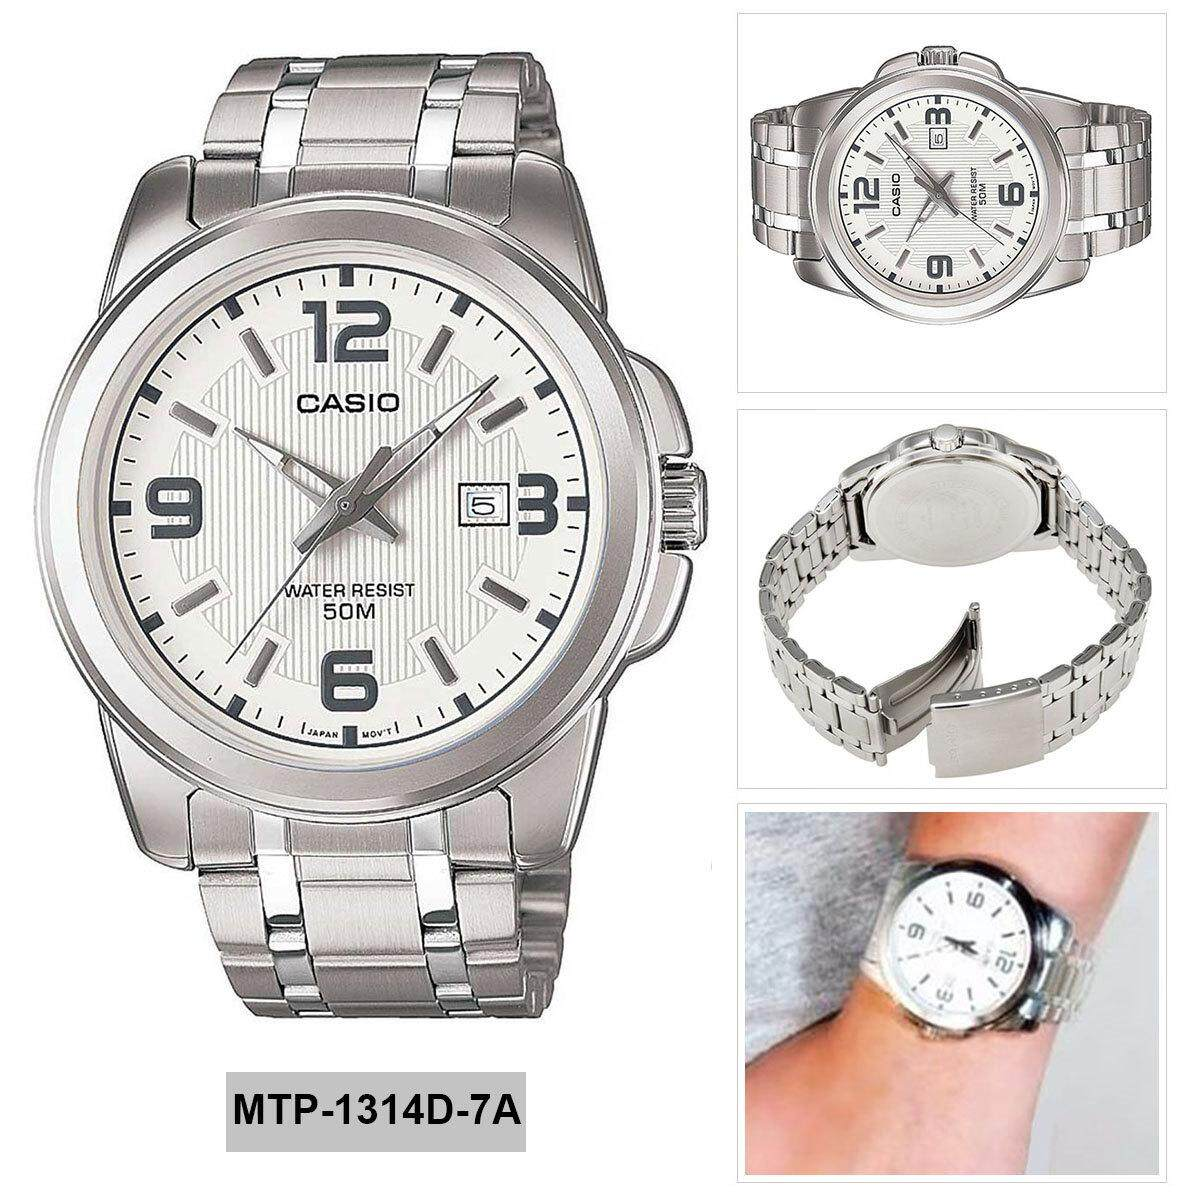 c95eb5d0f Sell Casio Mtp Cheapest Best Quality Th Store Shop Radiant Quartz Analog  Watch 1274d 1adf In